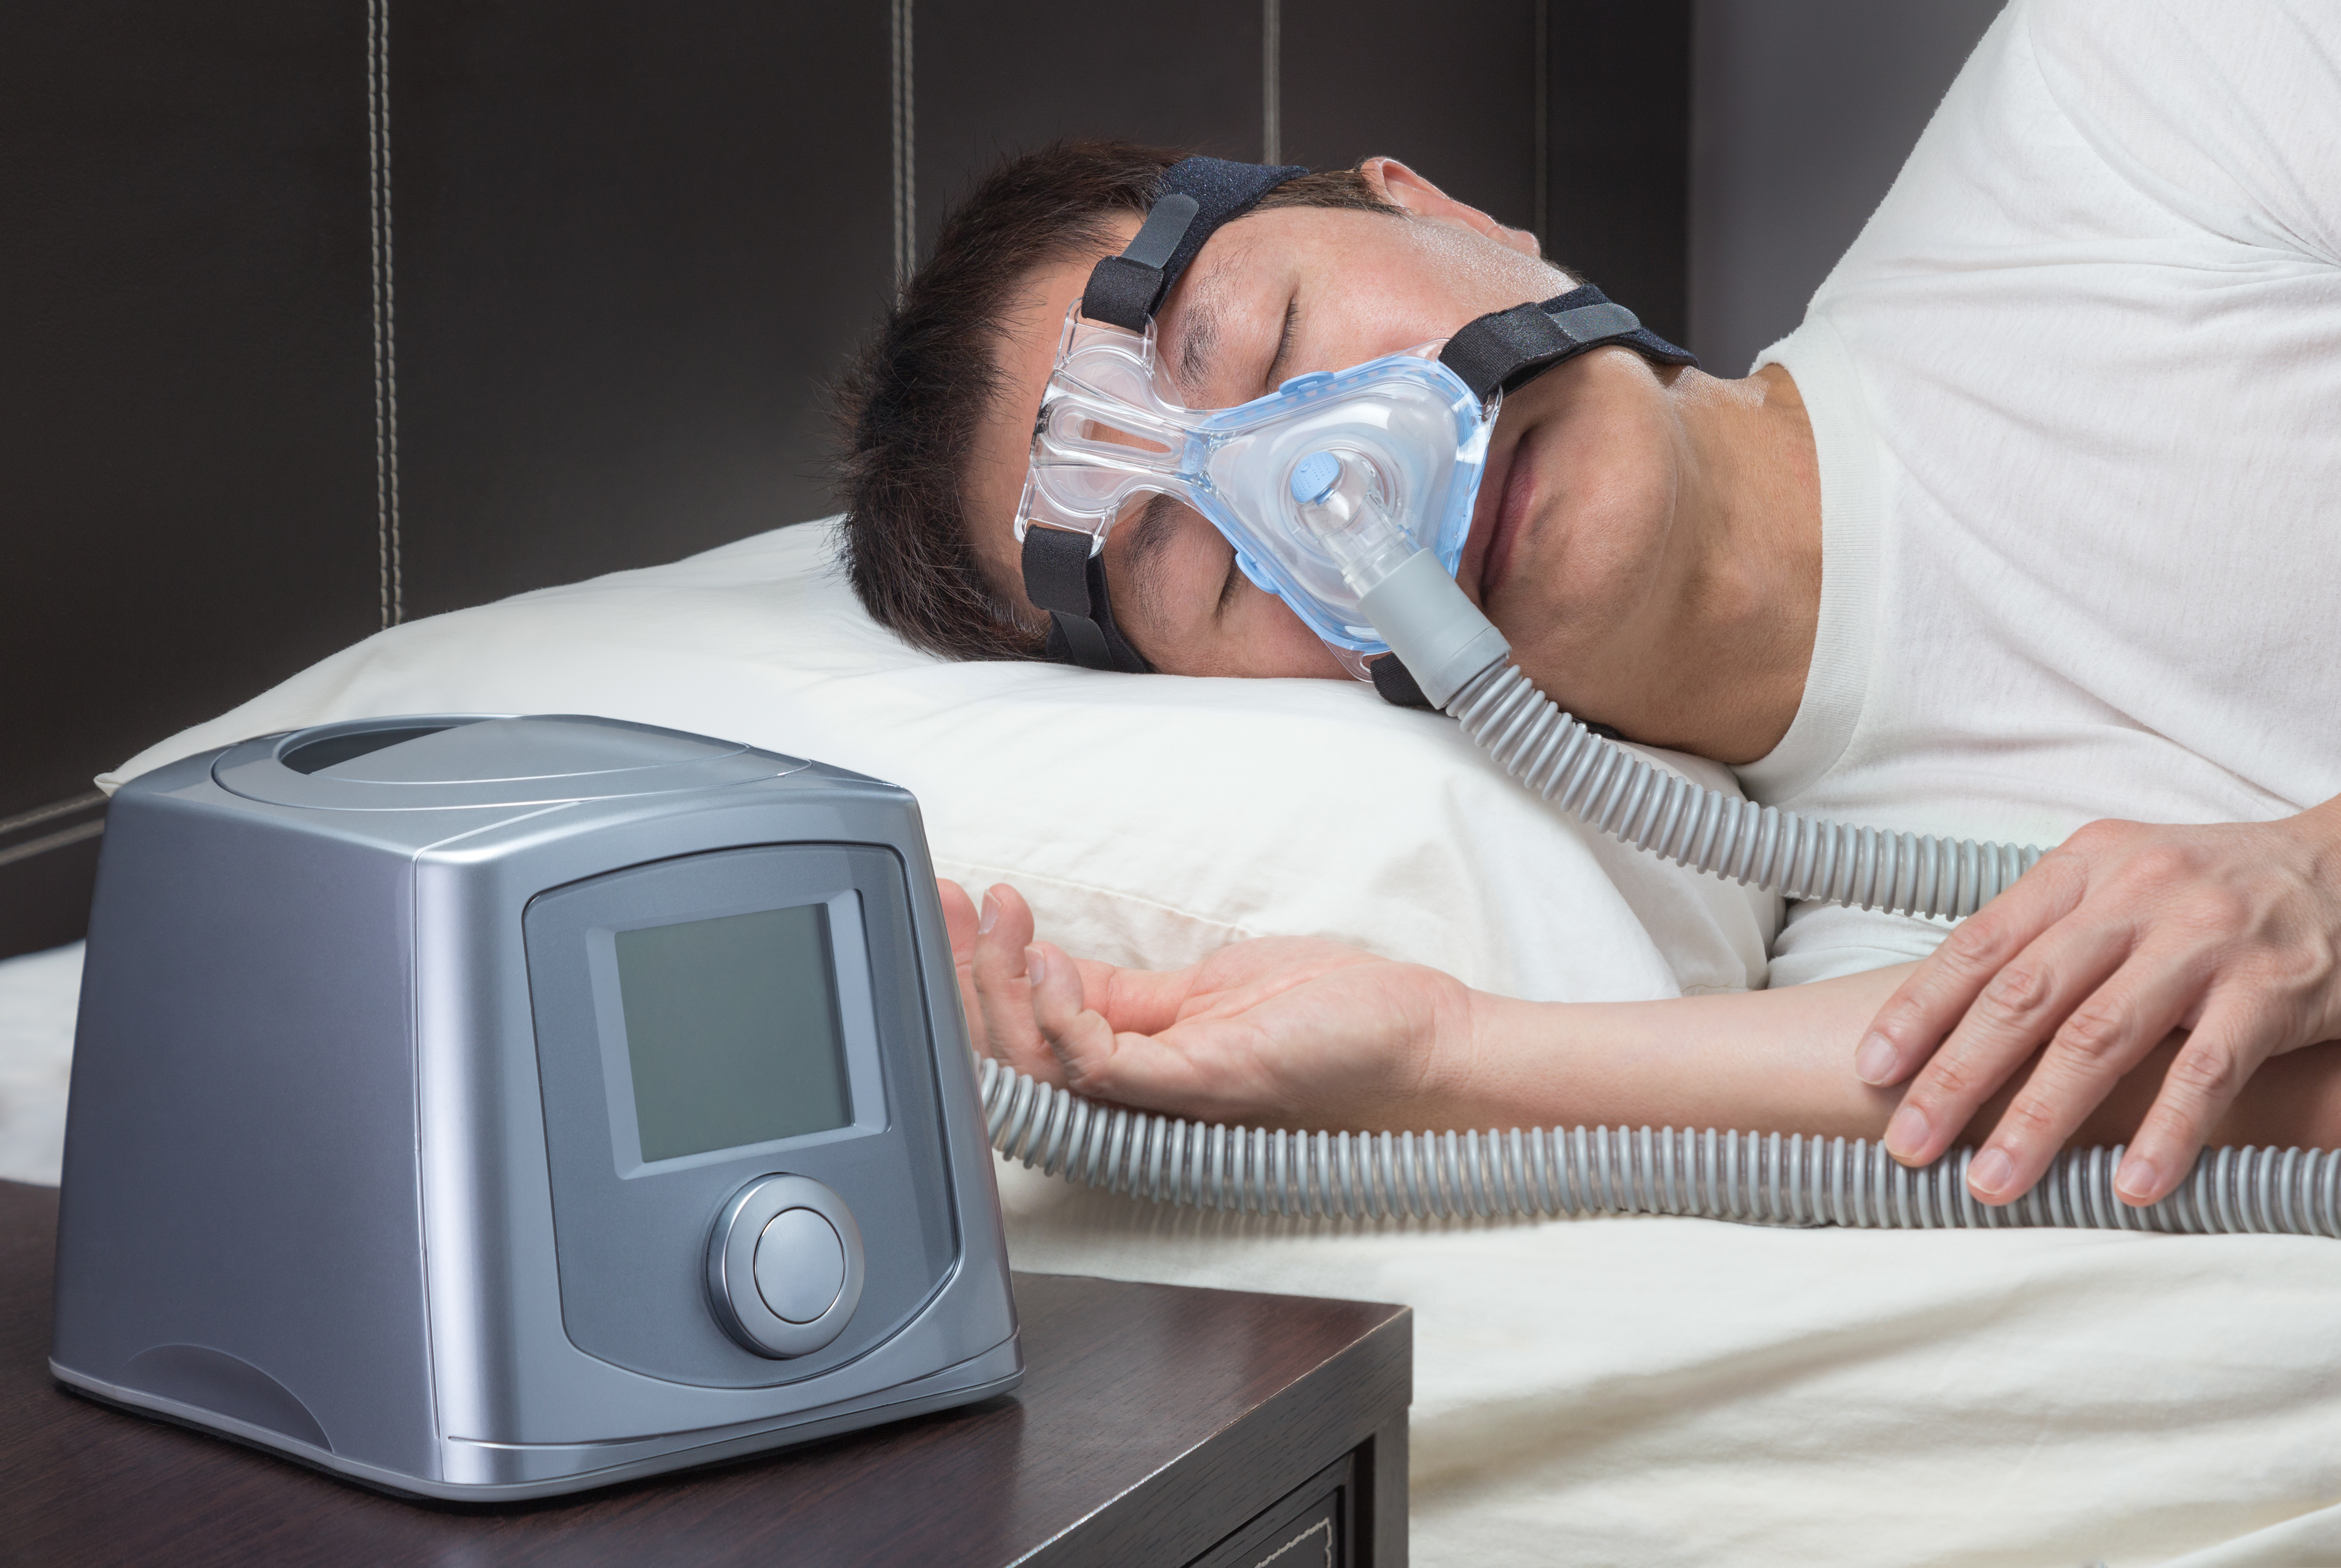 Getting used to even the idea of wearing a CPAP mask, such as this, to bed for sleep apnea can be hard for many people.